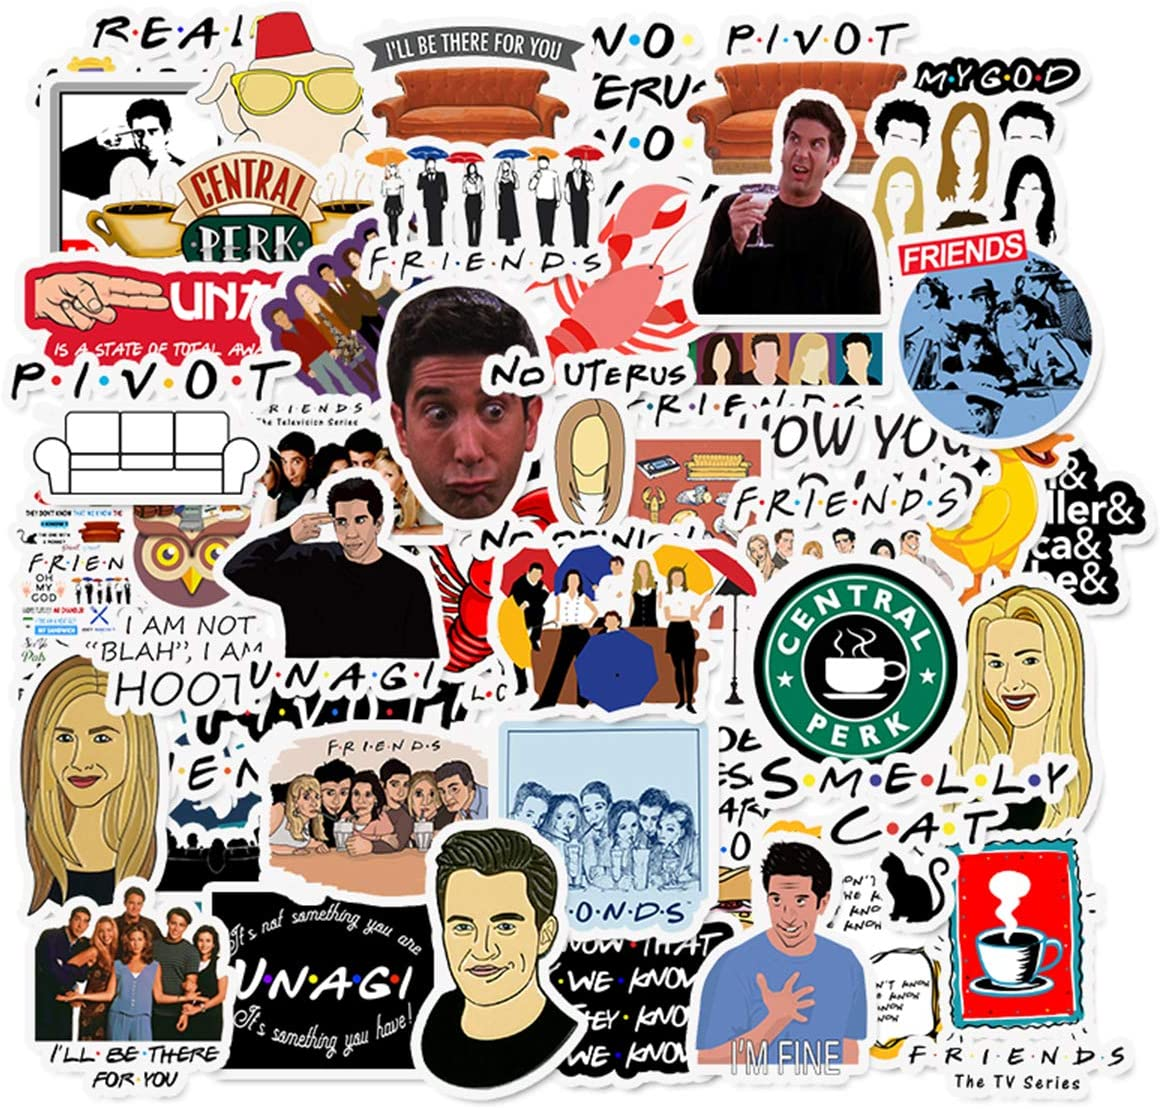 50pcs Friends TV Show Theme Stickers Laptop Stickers Computer Vinyl Sticker Waterproof Bike Skateboard Luggage Decal Graffiti Patches Decal (Friends)